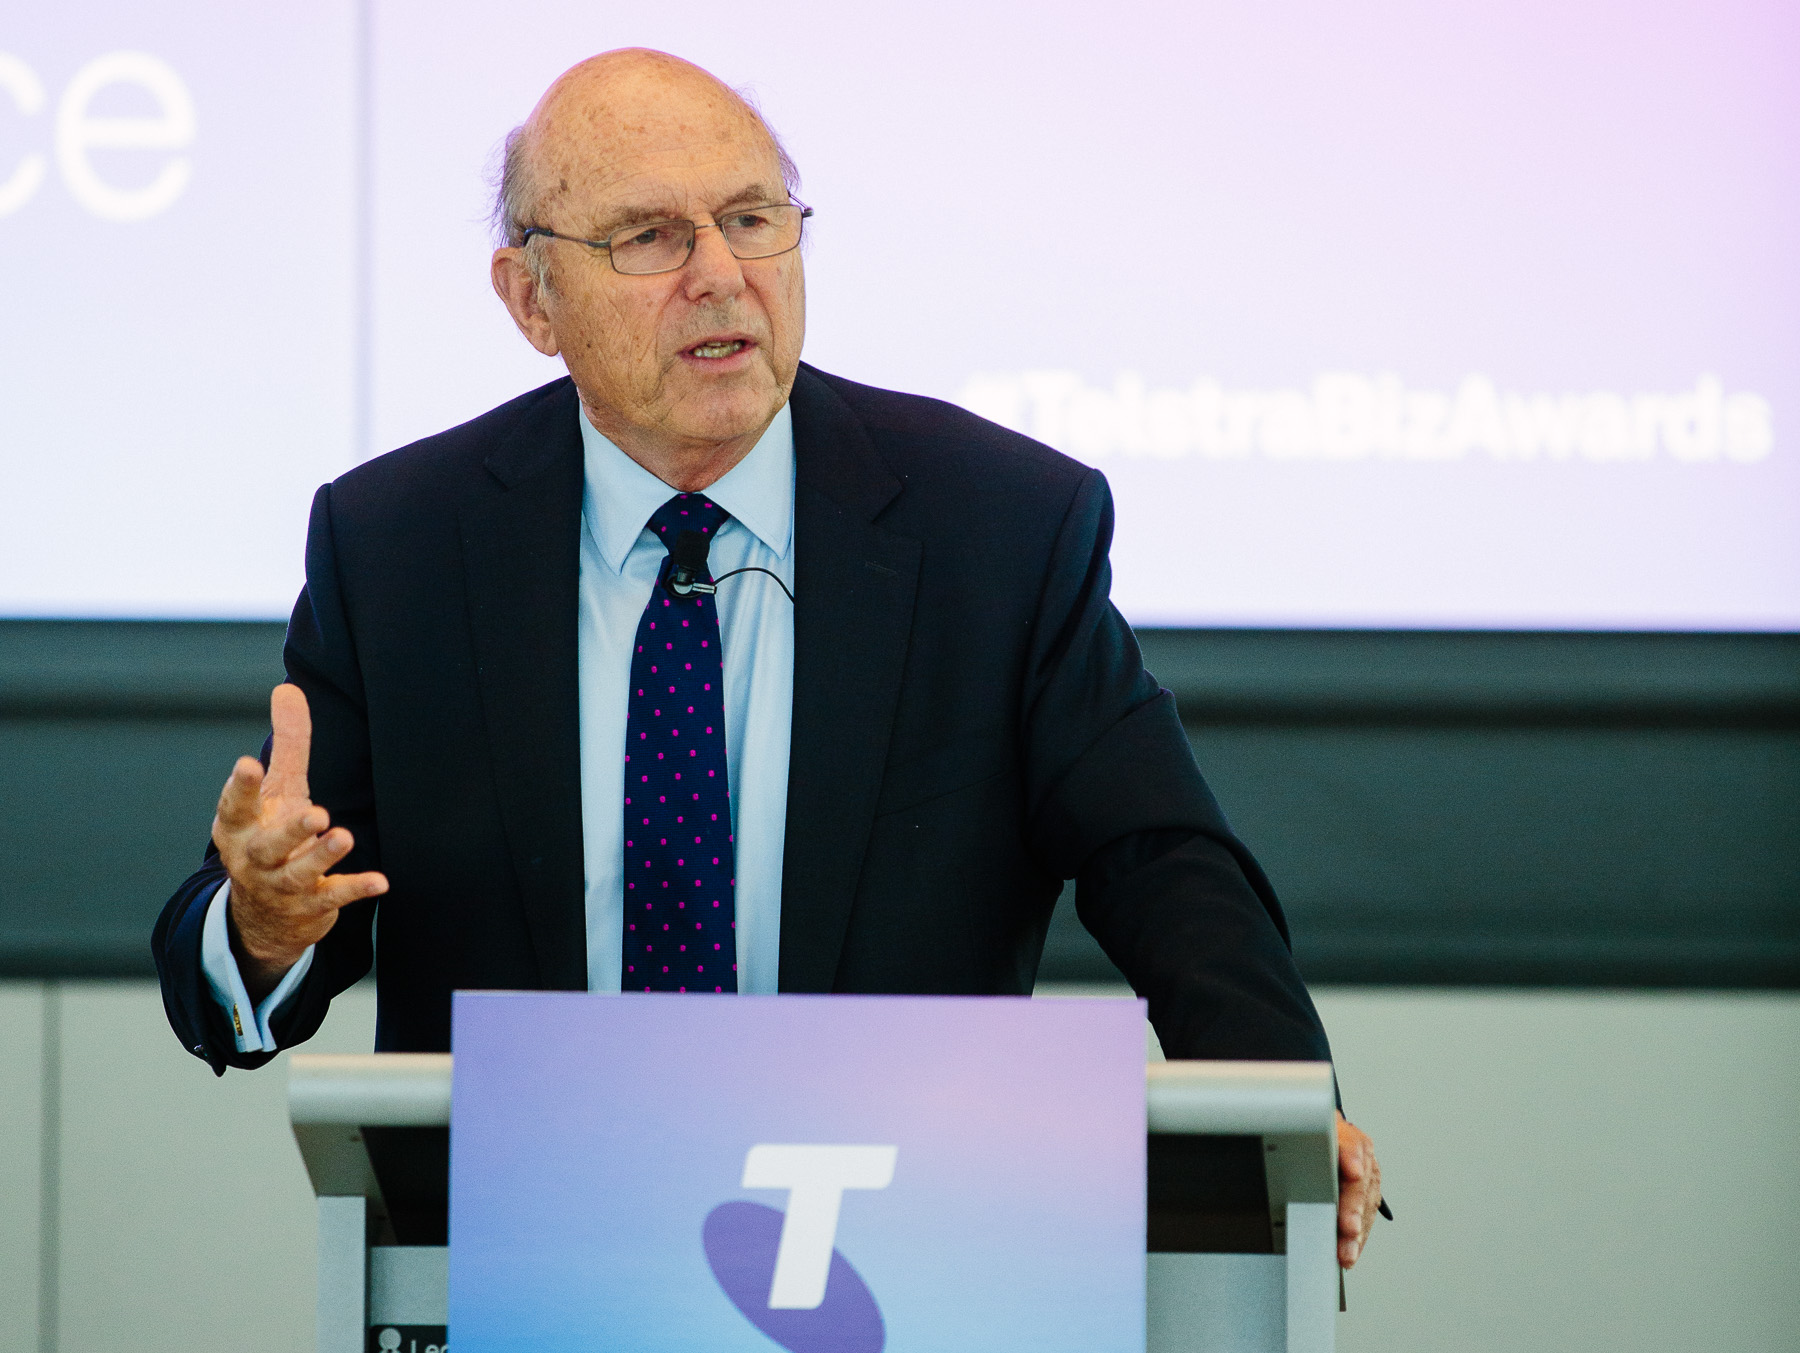 Robert Gottliebsen addresses an audience at the Telstra Business Awards